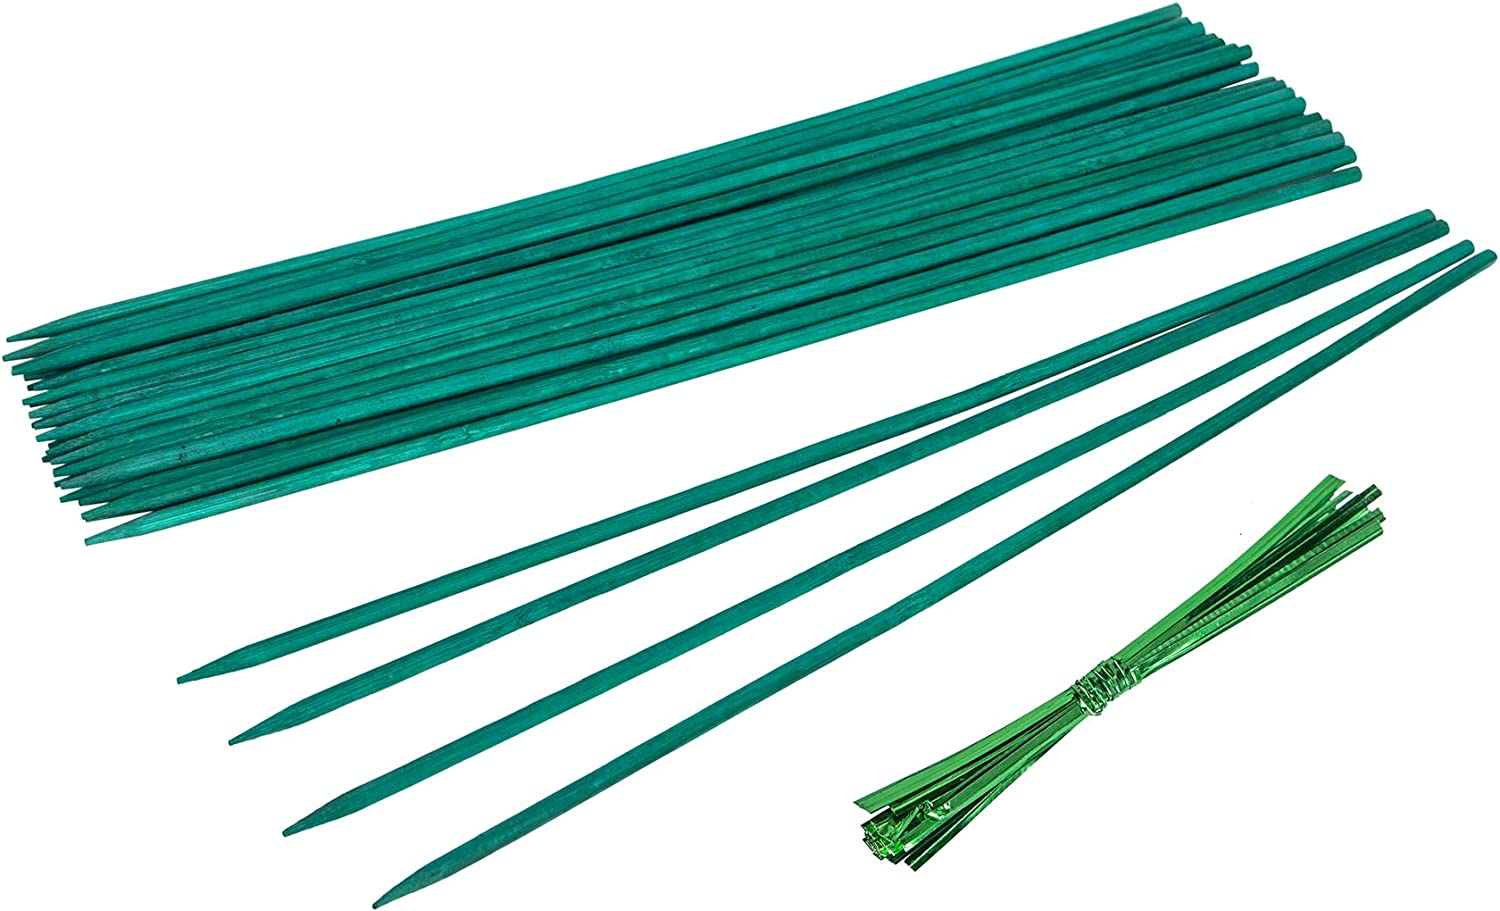 YHmall Regular dealer 25 Pcs Manufacturer regenerated product Green Wood Plant Support Stakes Floral Stak